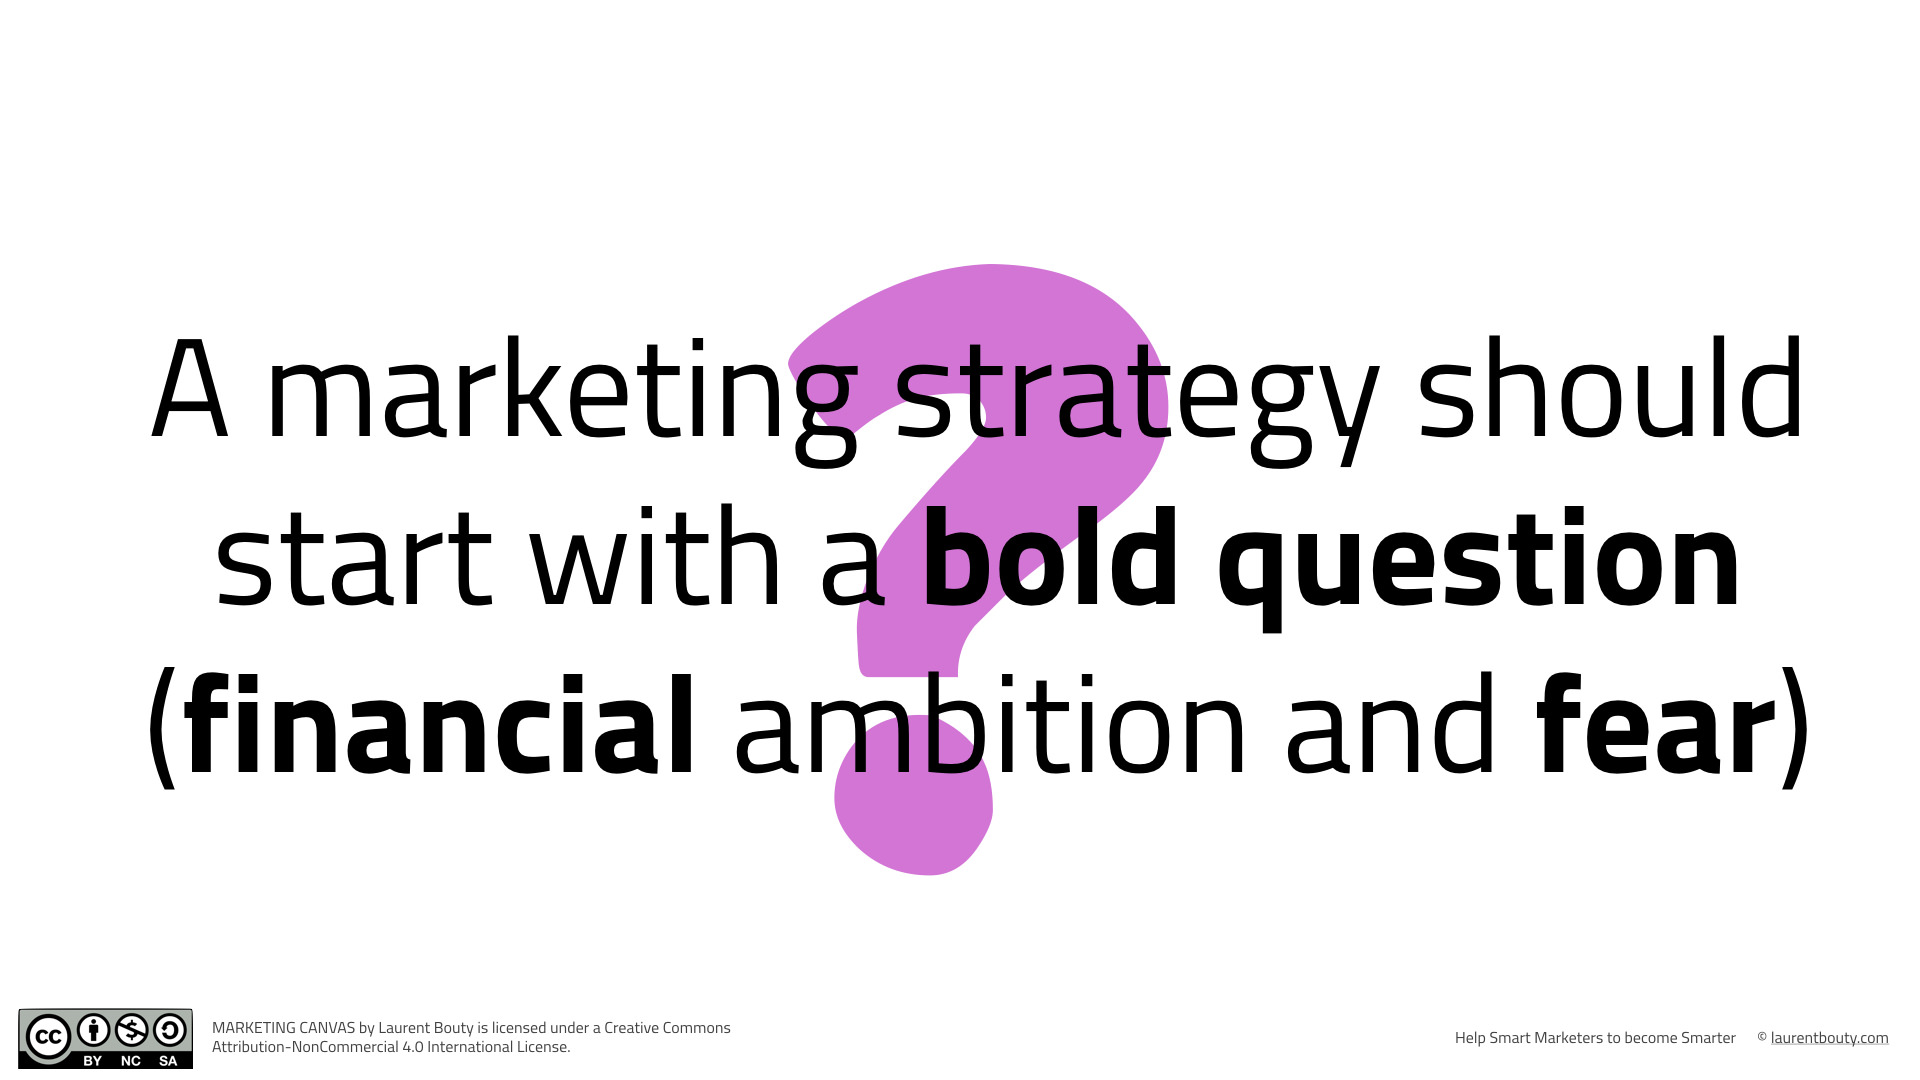 Marketing Strategy should start with a bold question